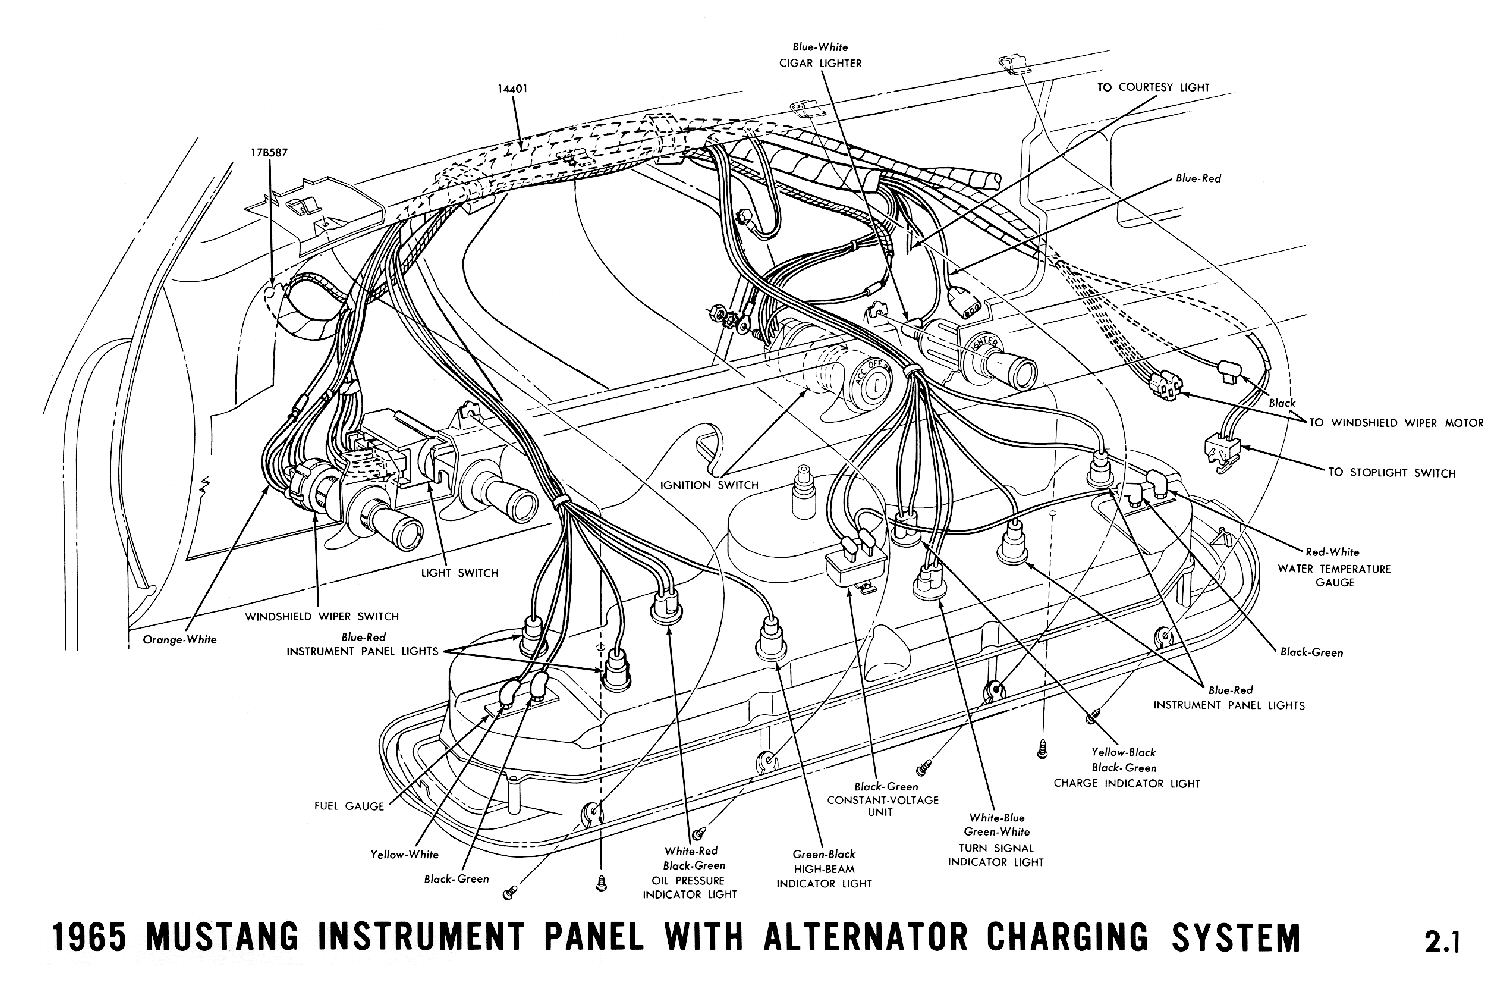 1964 ford fuel gauge wiring wiring diagram technic 1964 ford fuel gauge wiring manual e book1965 mustang wiring diagrams average joe restoration1964 ford fuel